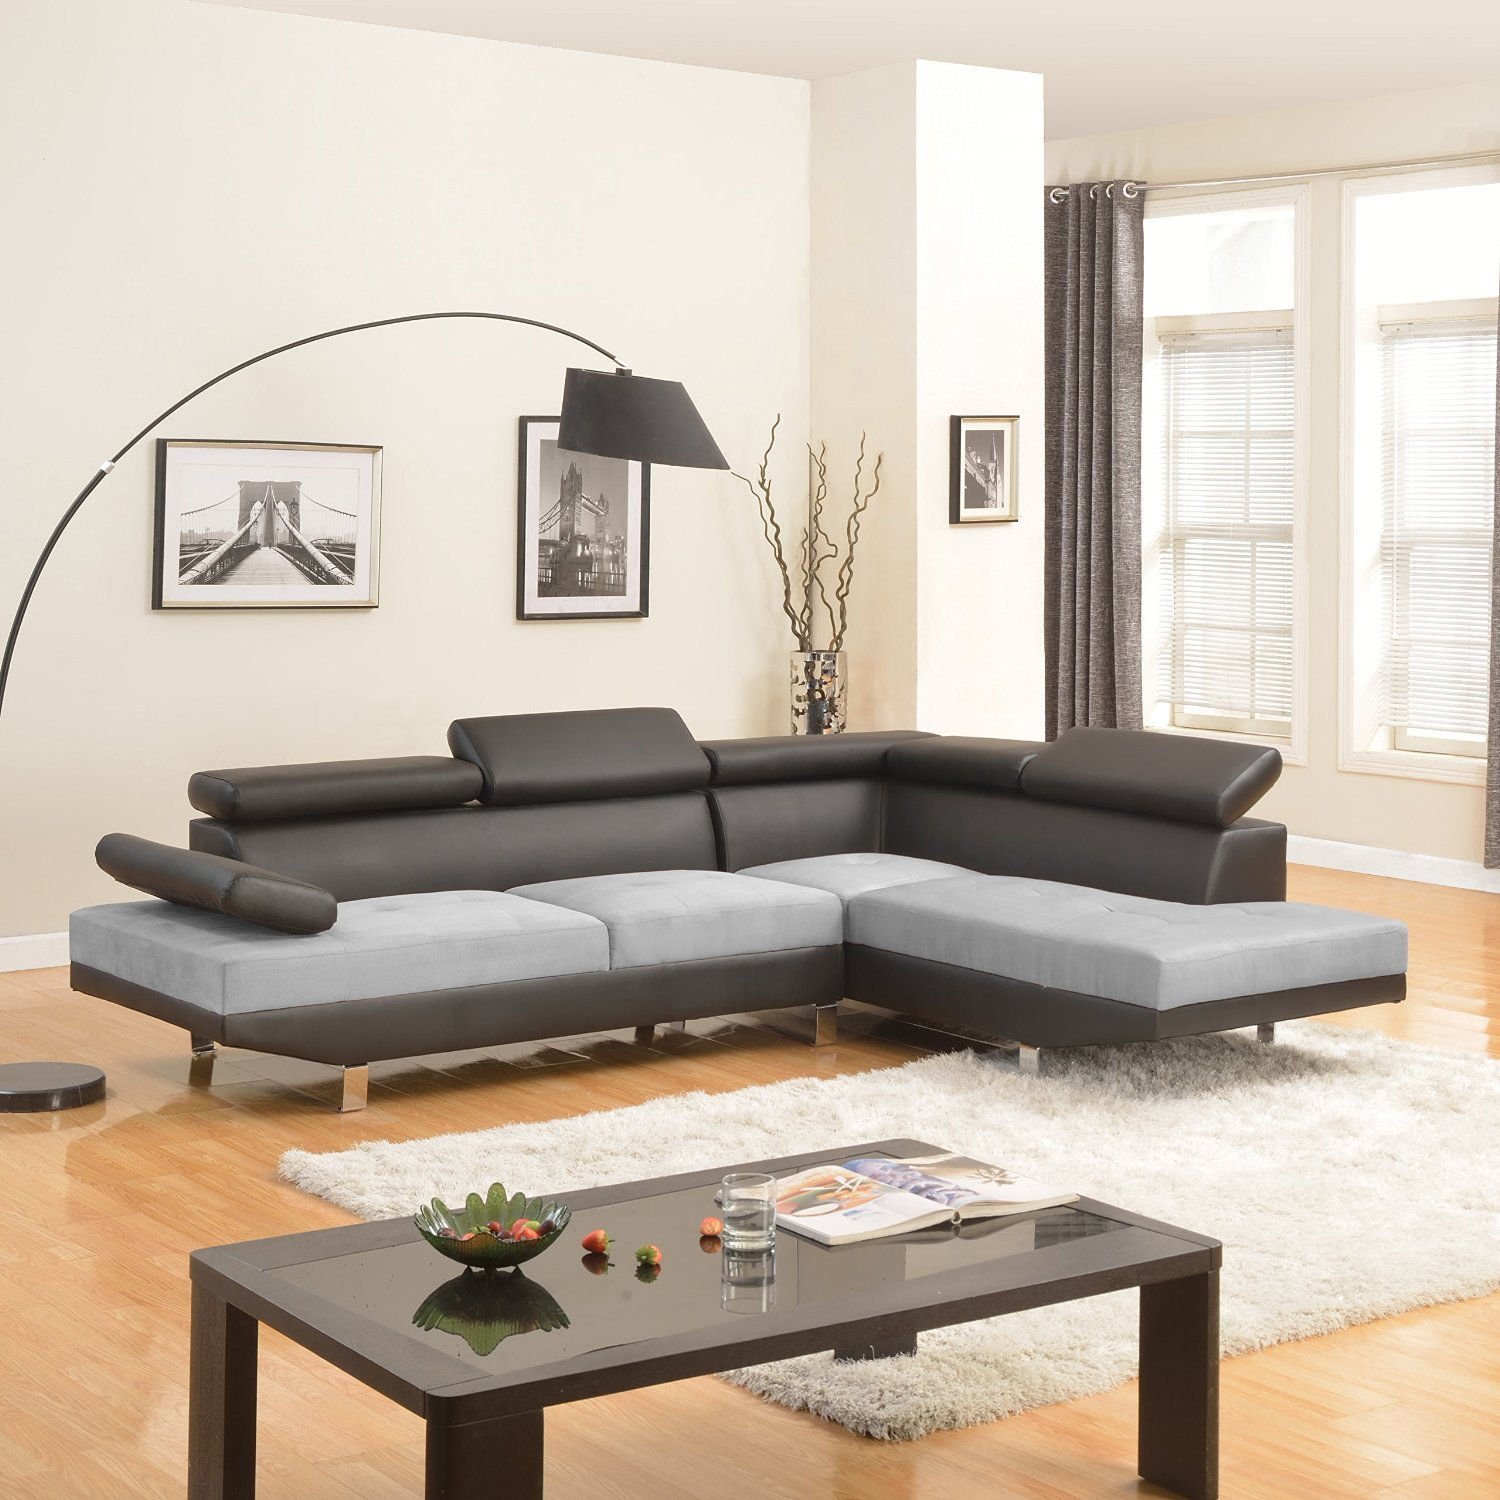 Details about Black/Grey Contemporary 2-Tone Faux Leather Microfiber  Sectional Sofa